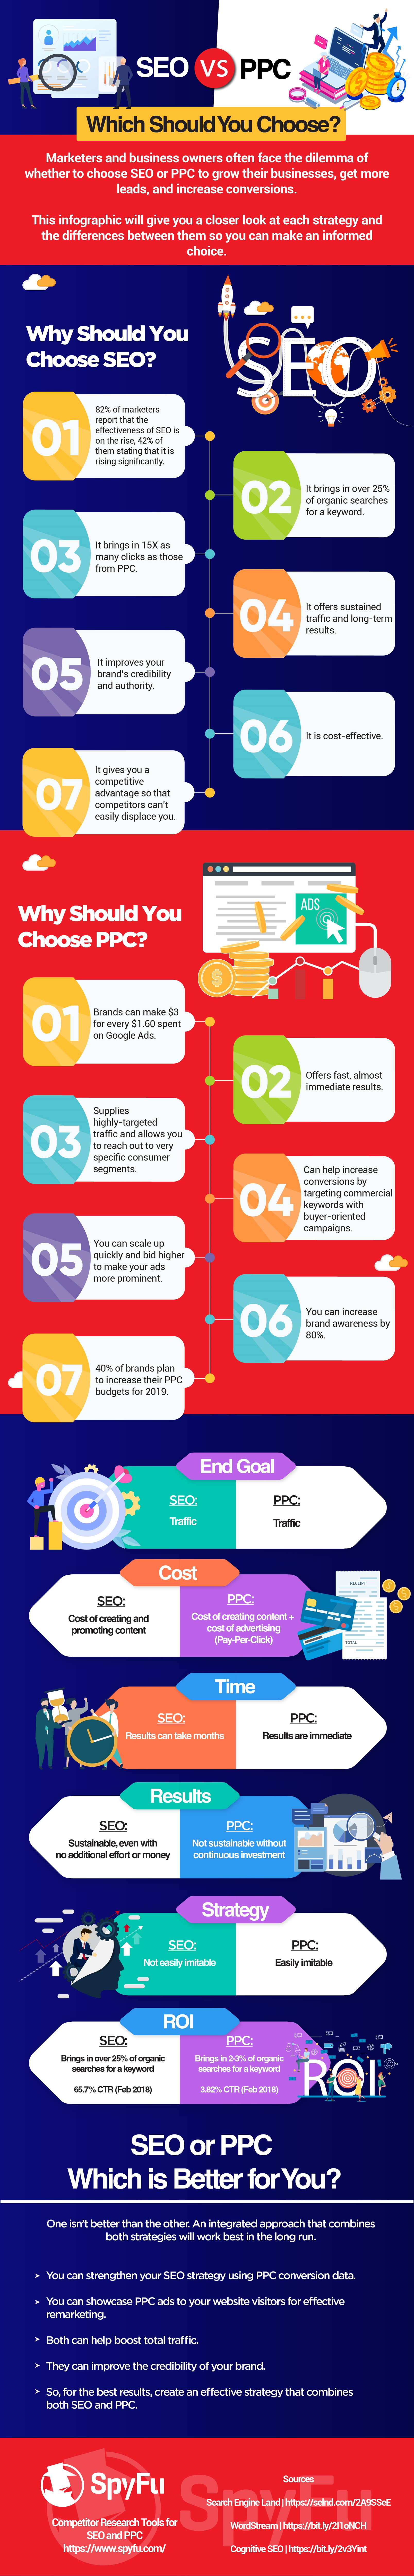 How to Promote Your Brand: SEO or PPC? [Infographic]